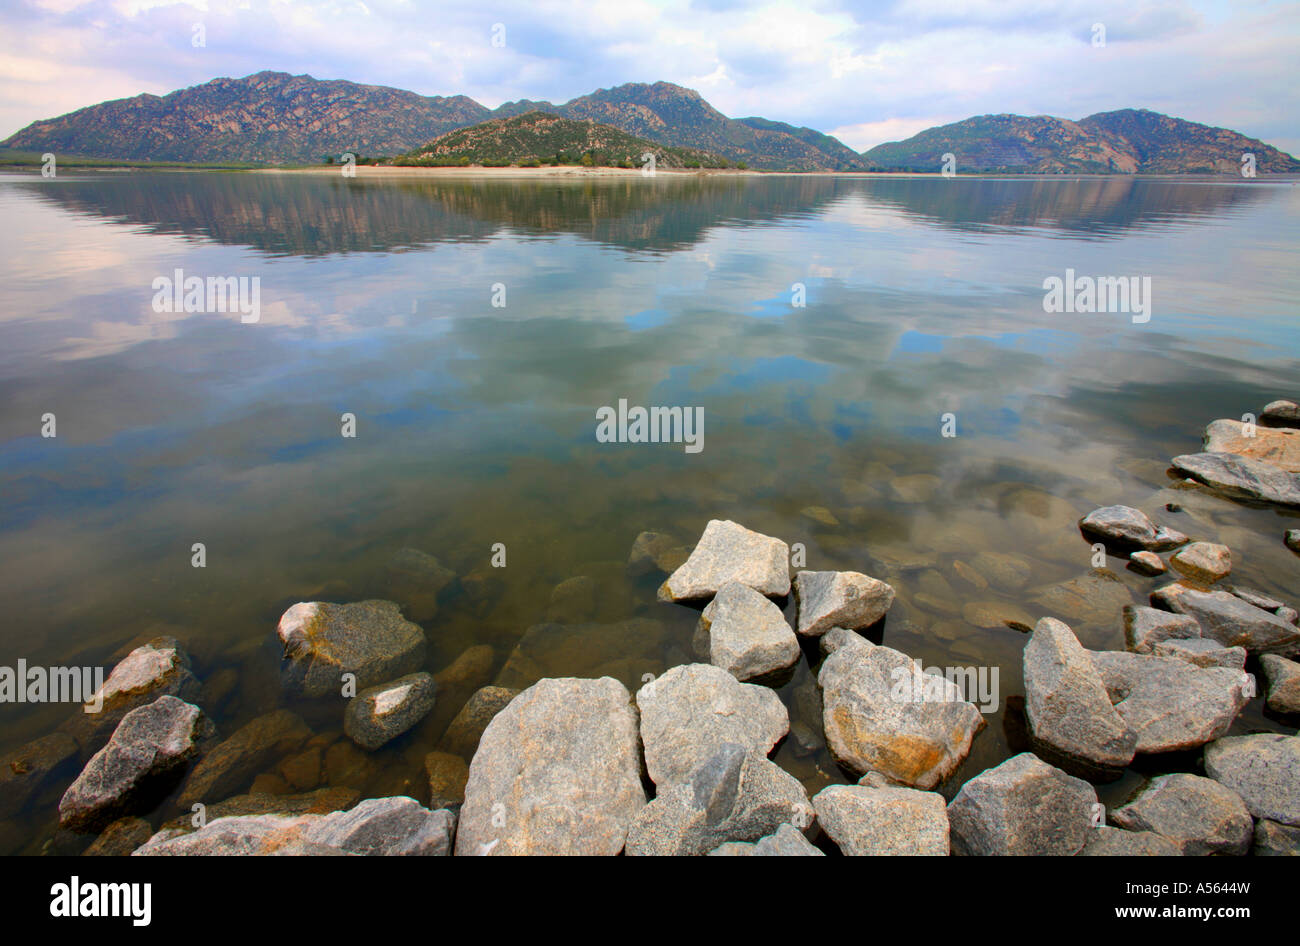 lake perris state recreation area perris riverside county california stock photo 11209464 alamy. Black Bedroom Furniture Sets. Home Design Ideas